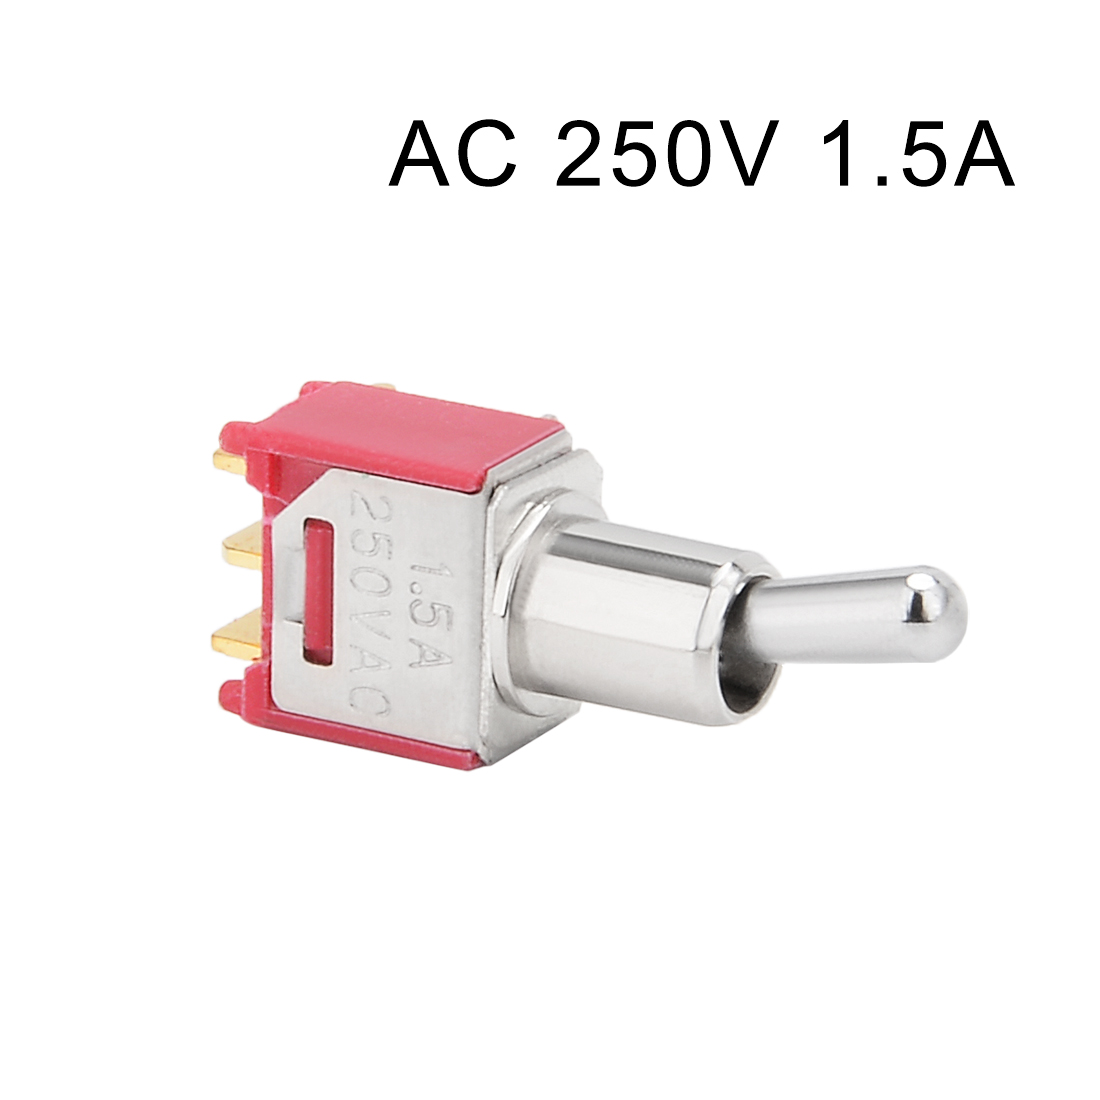 Ac 250v 15a On Spdt Toggle Switch Gold Tone Right Angled Terminals Switched To The